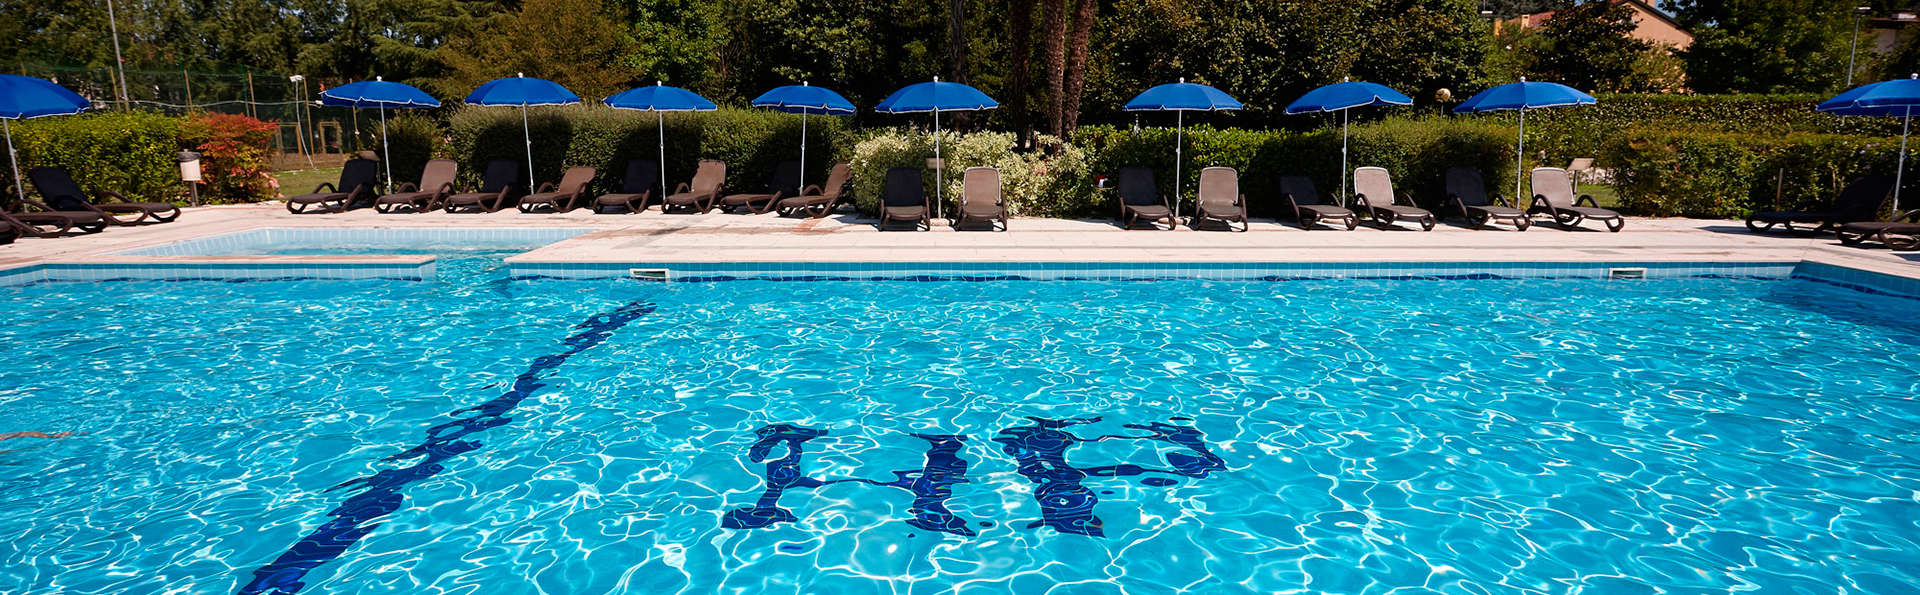 Villa Patriarca Hotel - EDIT_NEW_pool.jpg